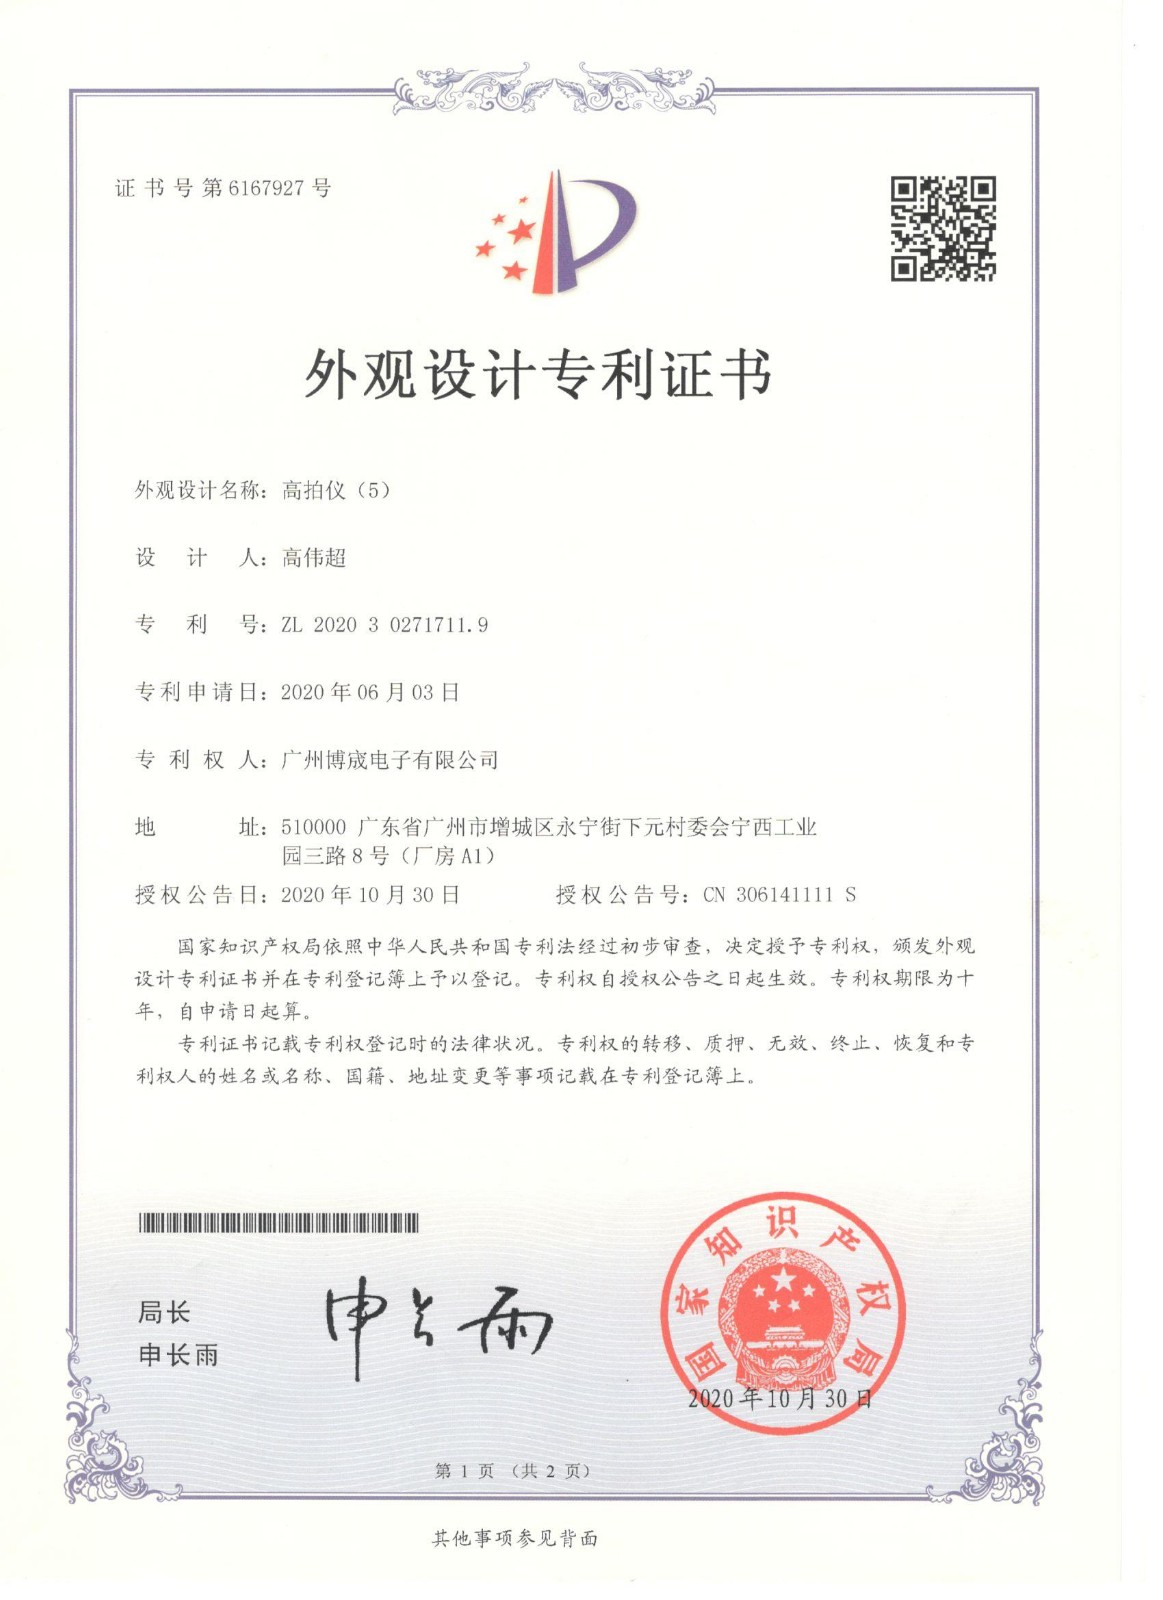 Appearance patent certificate 3.5